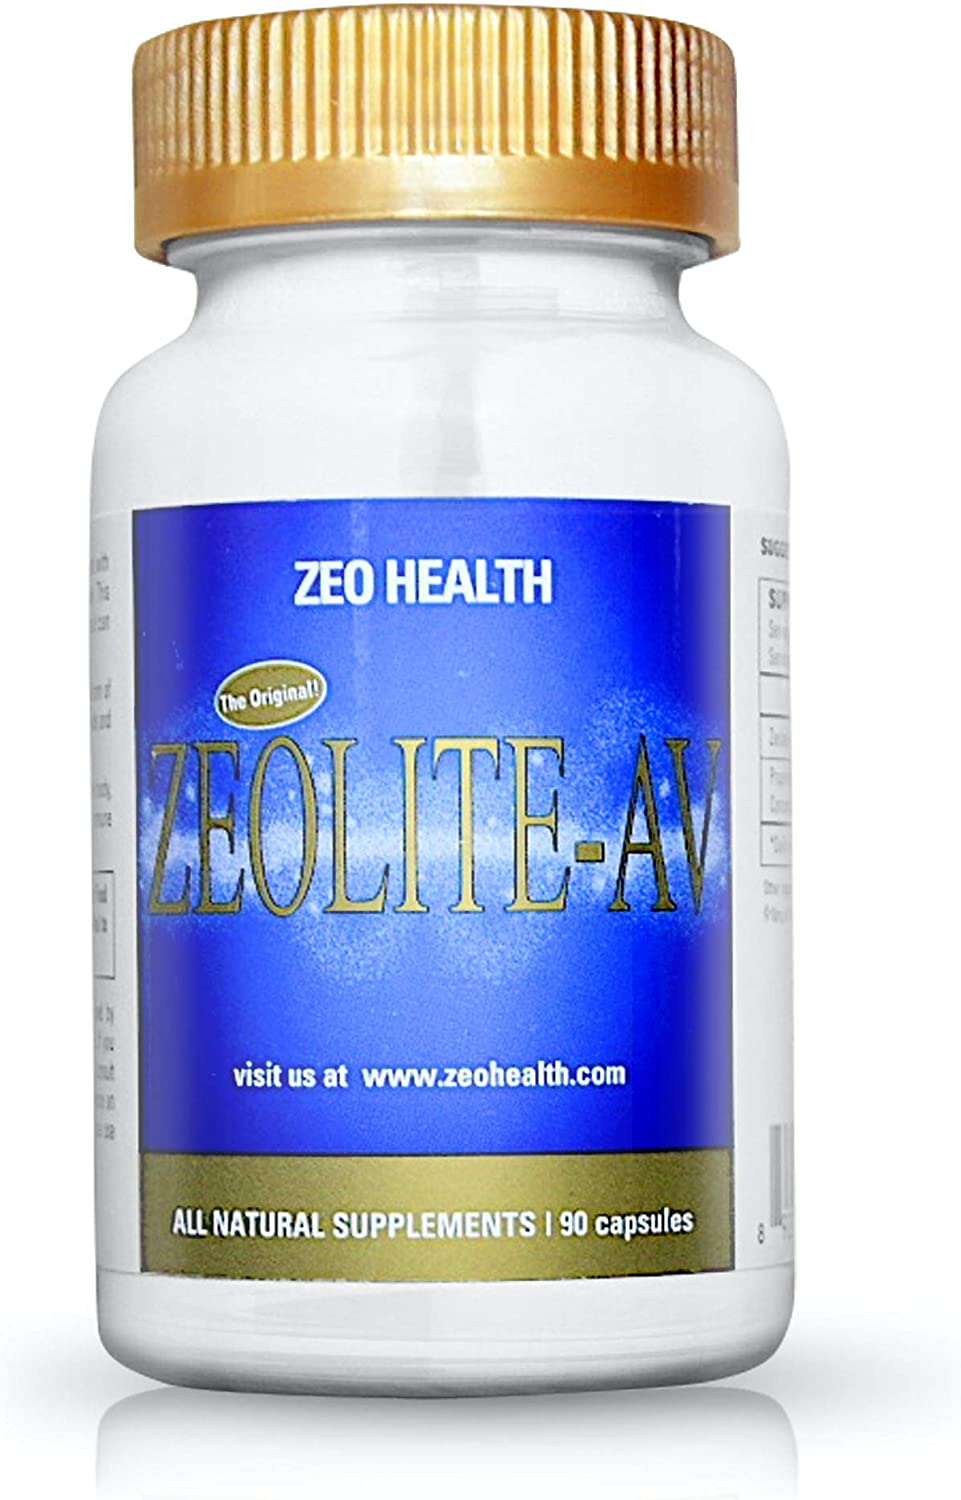 ZEOLITE–AV Capsules | Potent Immune System Booster with Humic Acid | Restore Trace Minerals, Replenish Electrolytes, & Remove Toxins | Promotes Energy, Restful Sleep, & Alleviates Brain Fog (90 Count)